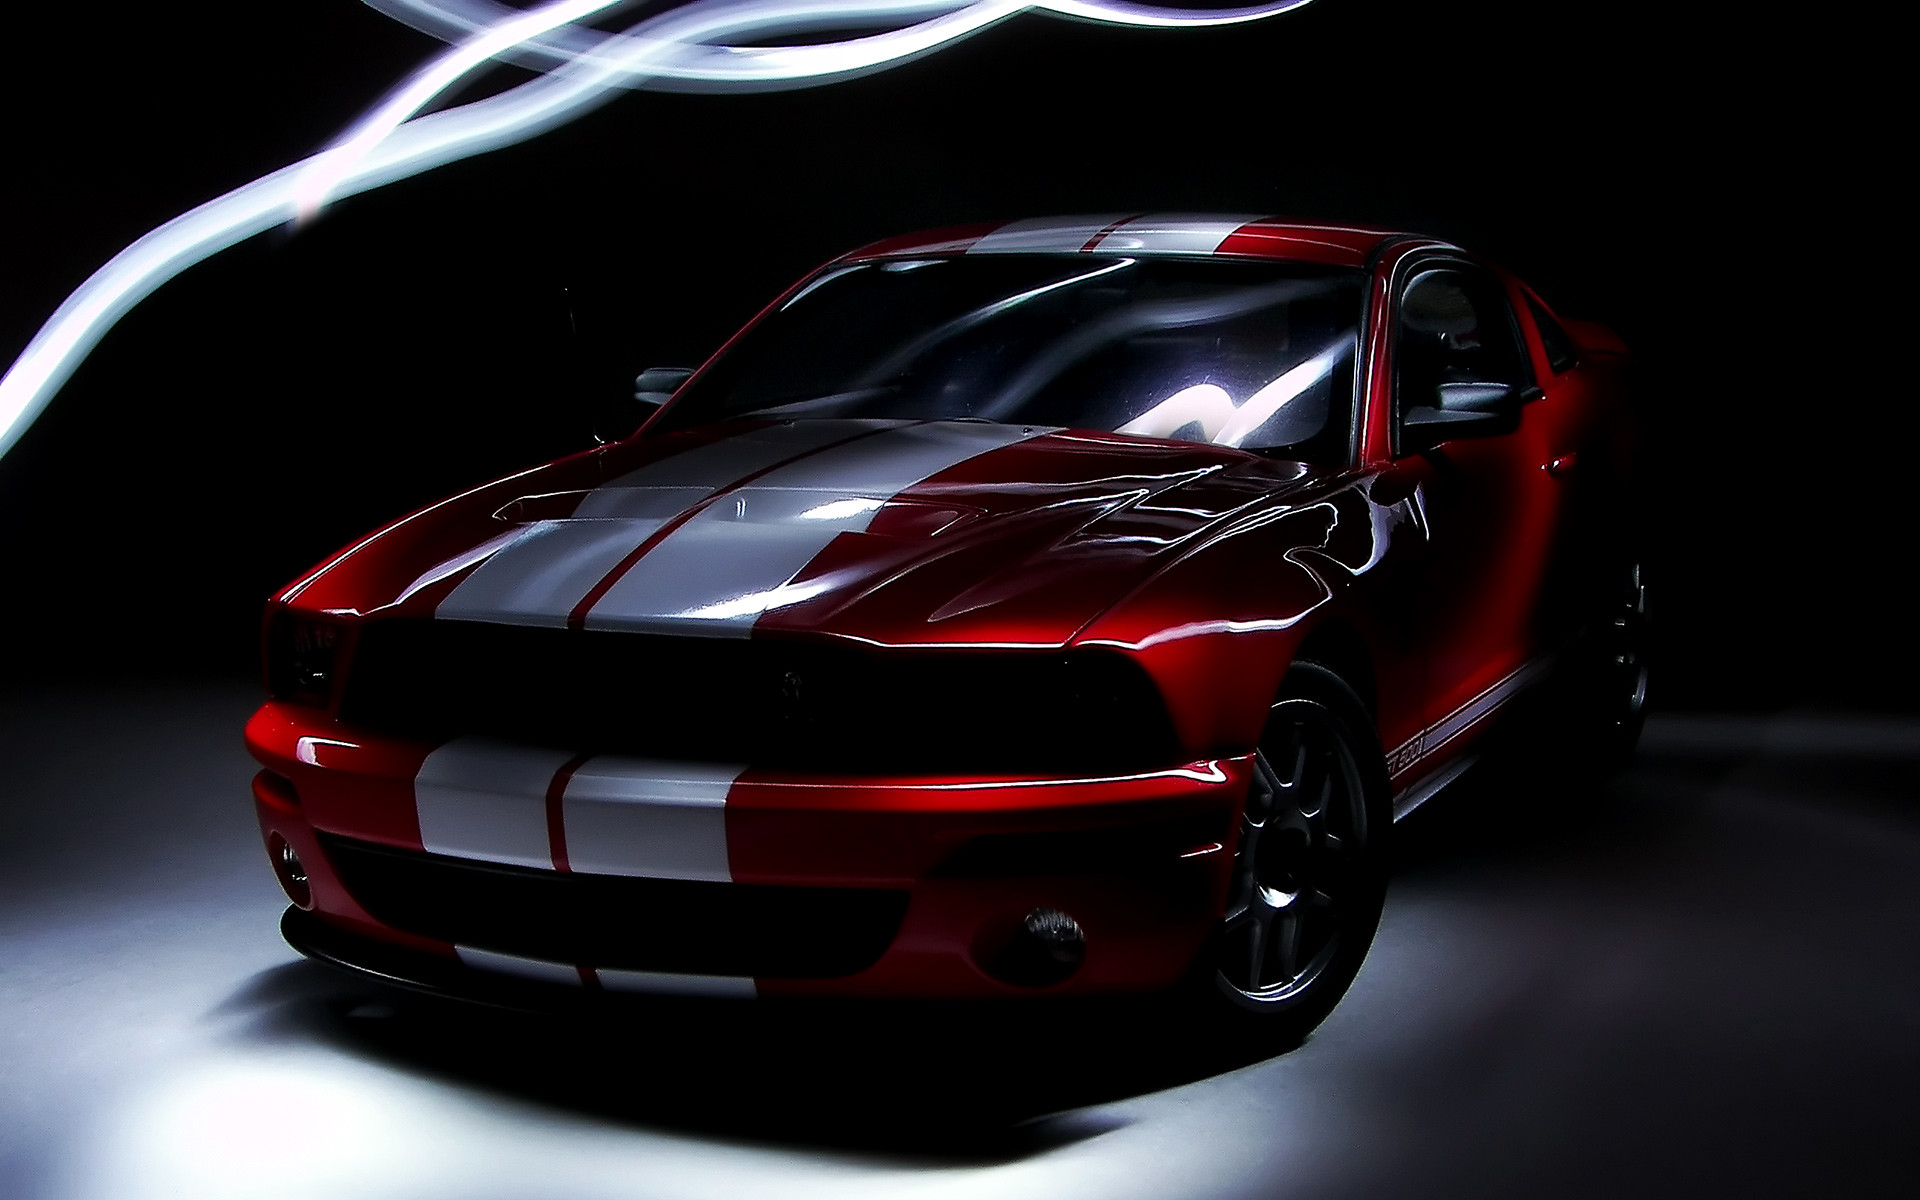 Cool Ford Cars Wallpapers HD – https://whatstrendingonline.com/cool-